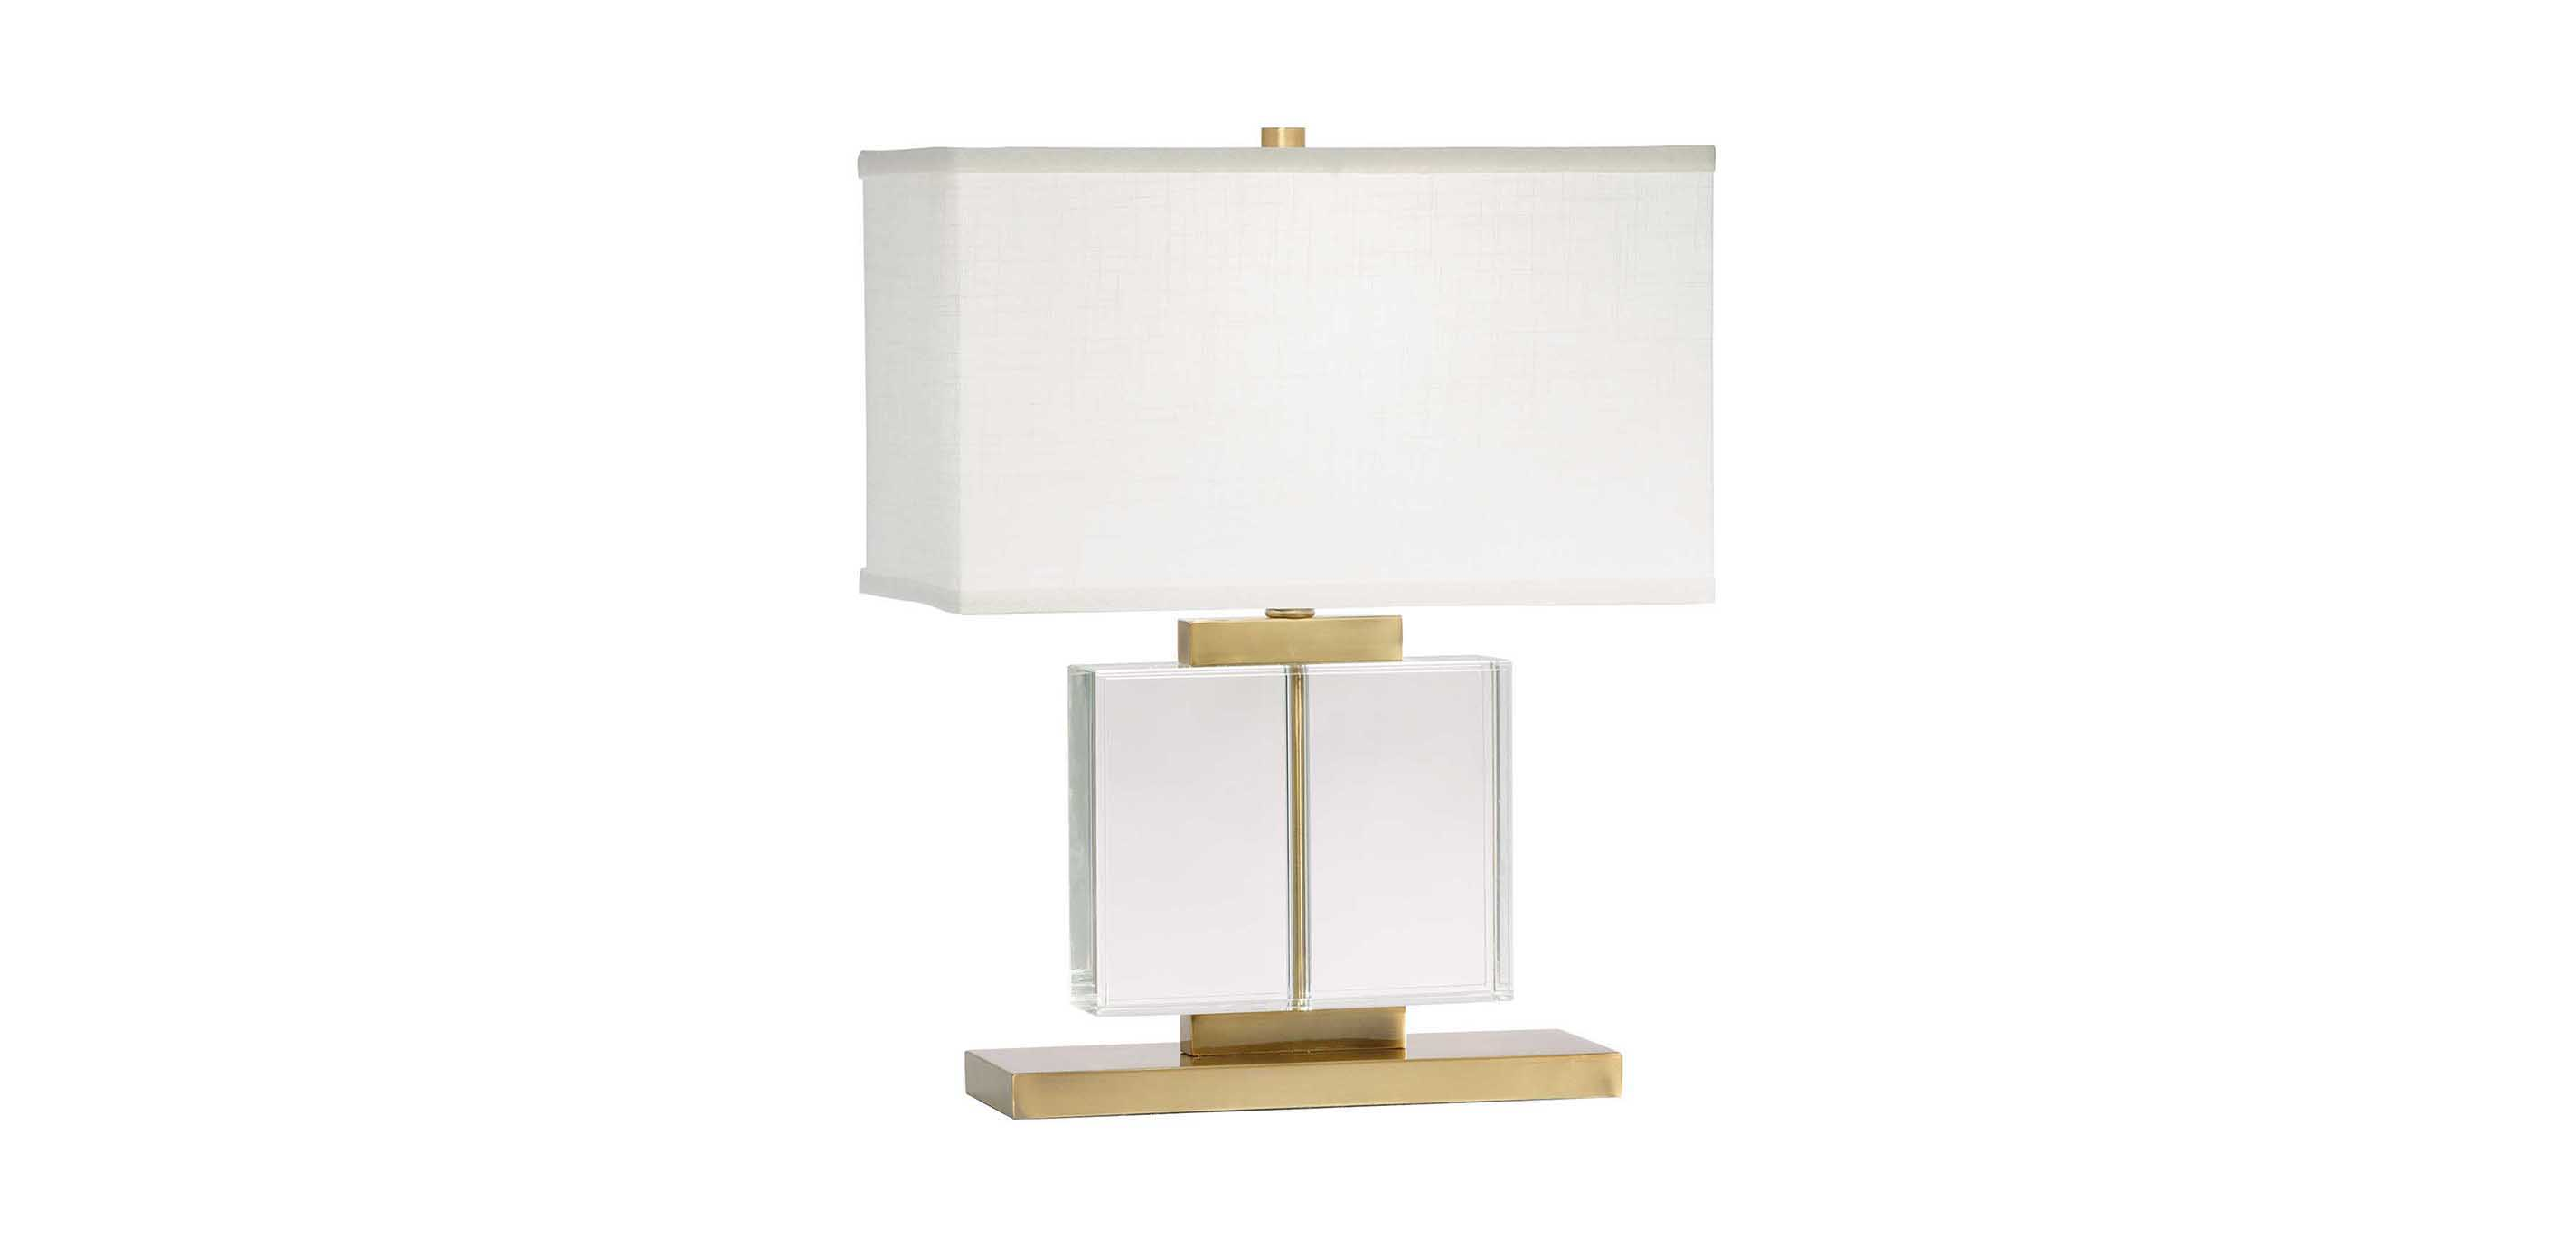 Images Victoria Table Lamp , , Large_gray